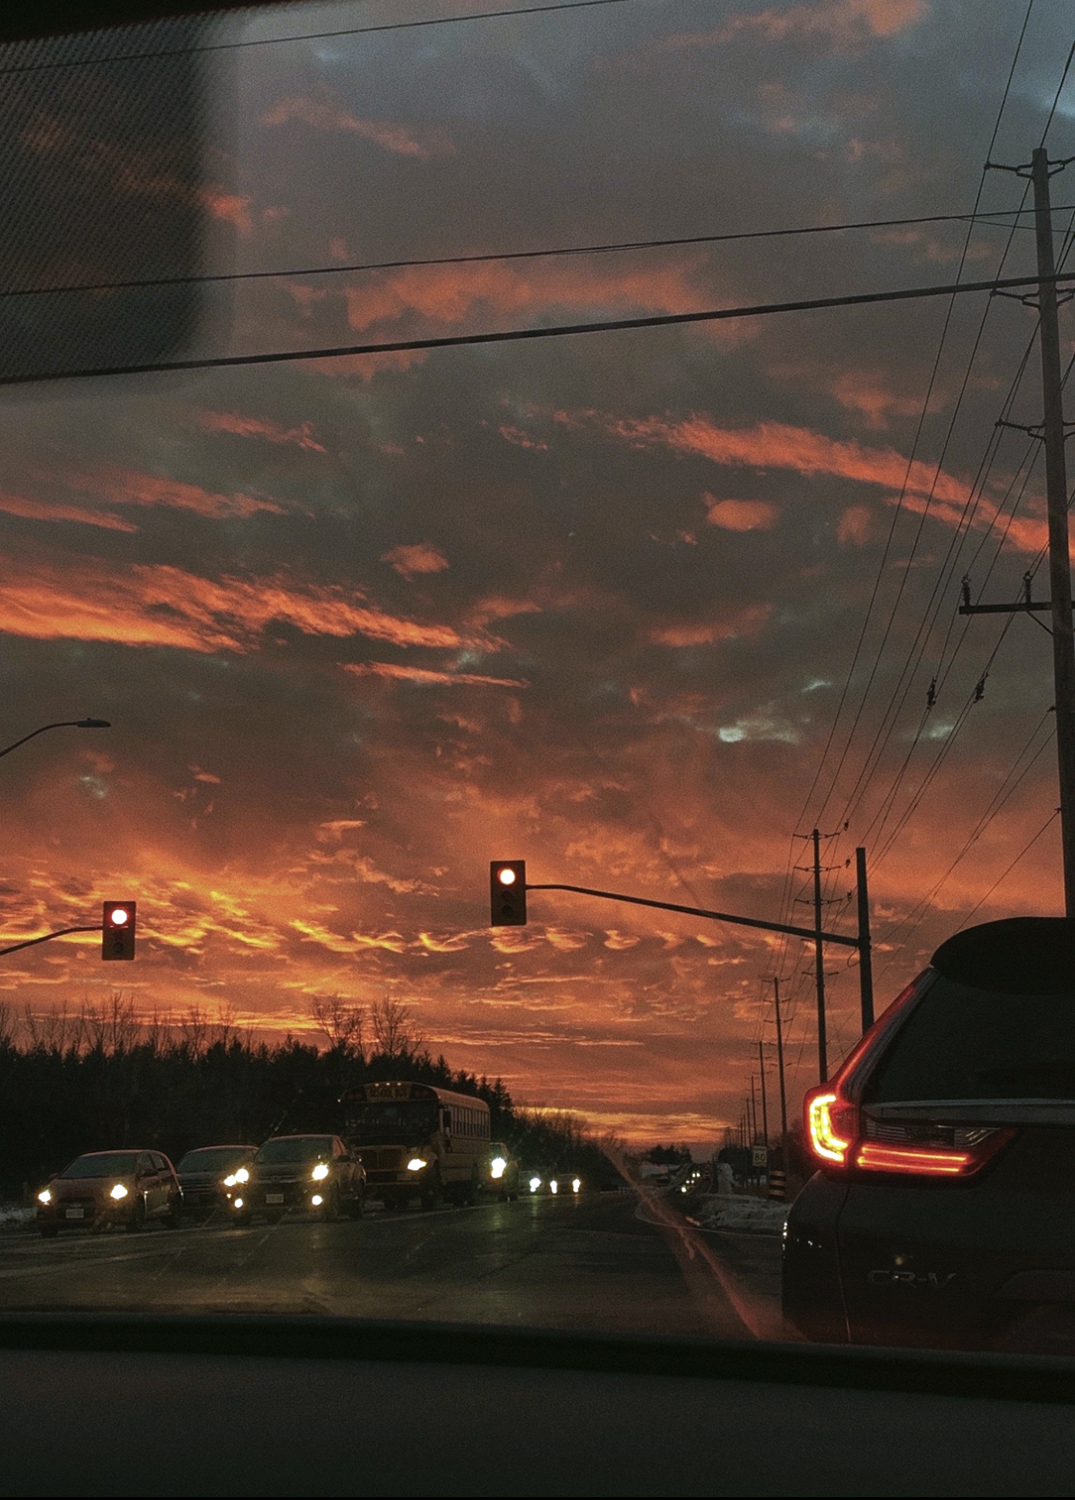 The Beauty of Nature: Sunset and Cars by Madison Dwyer, digital photograph - Nantyr Shores Secondary School